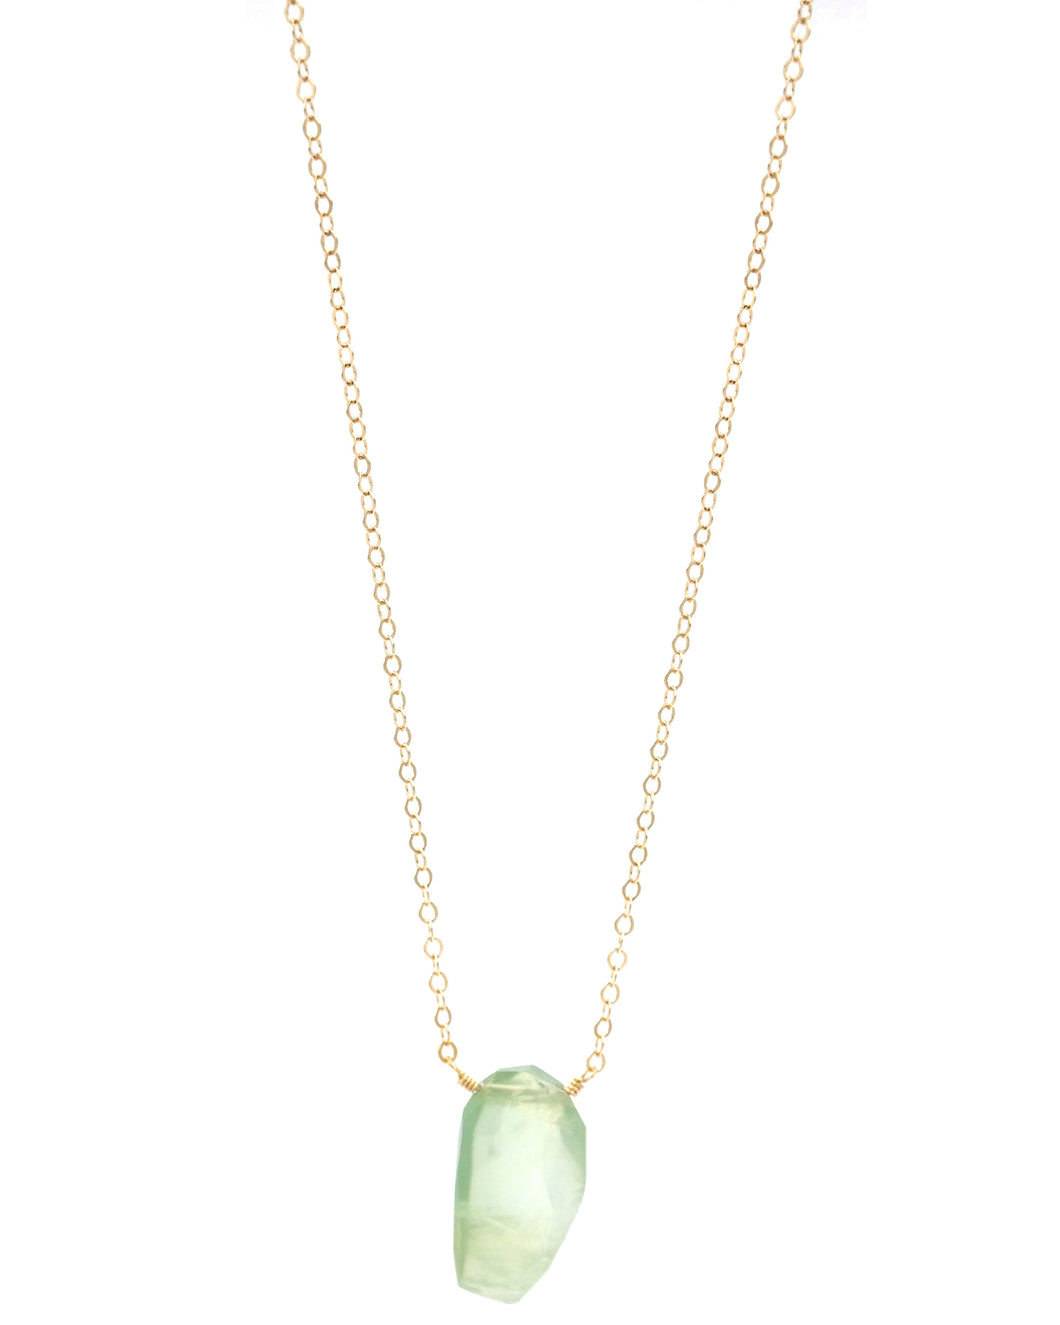 Prehnite Drop Necklace